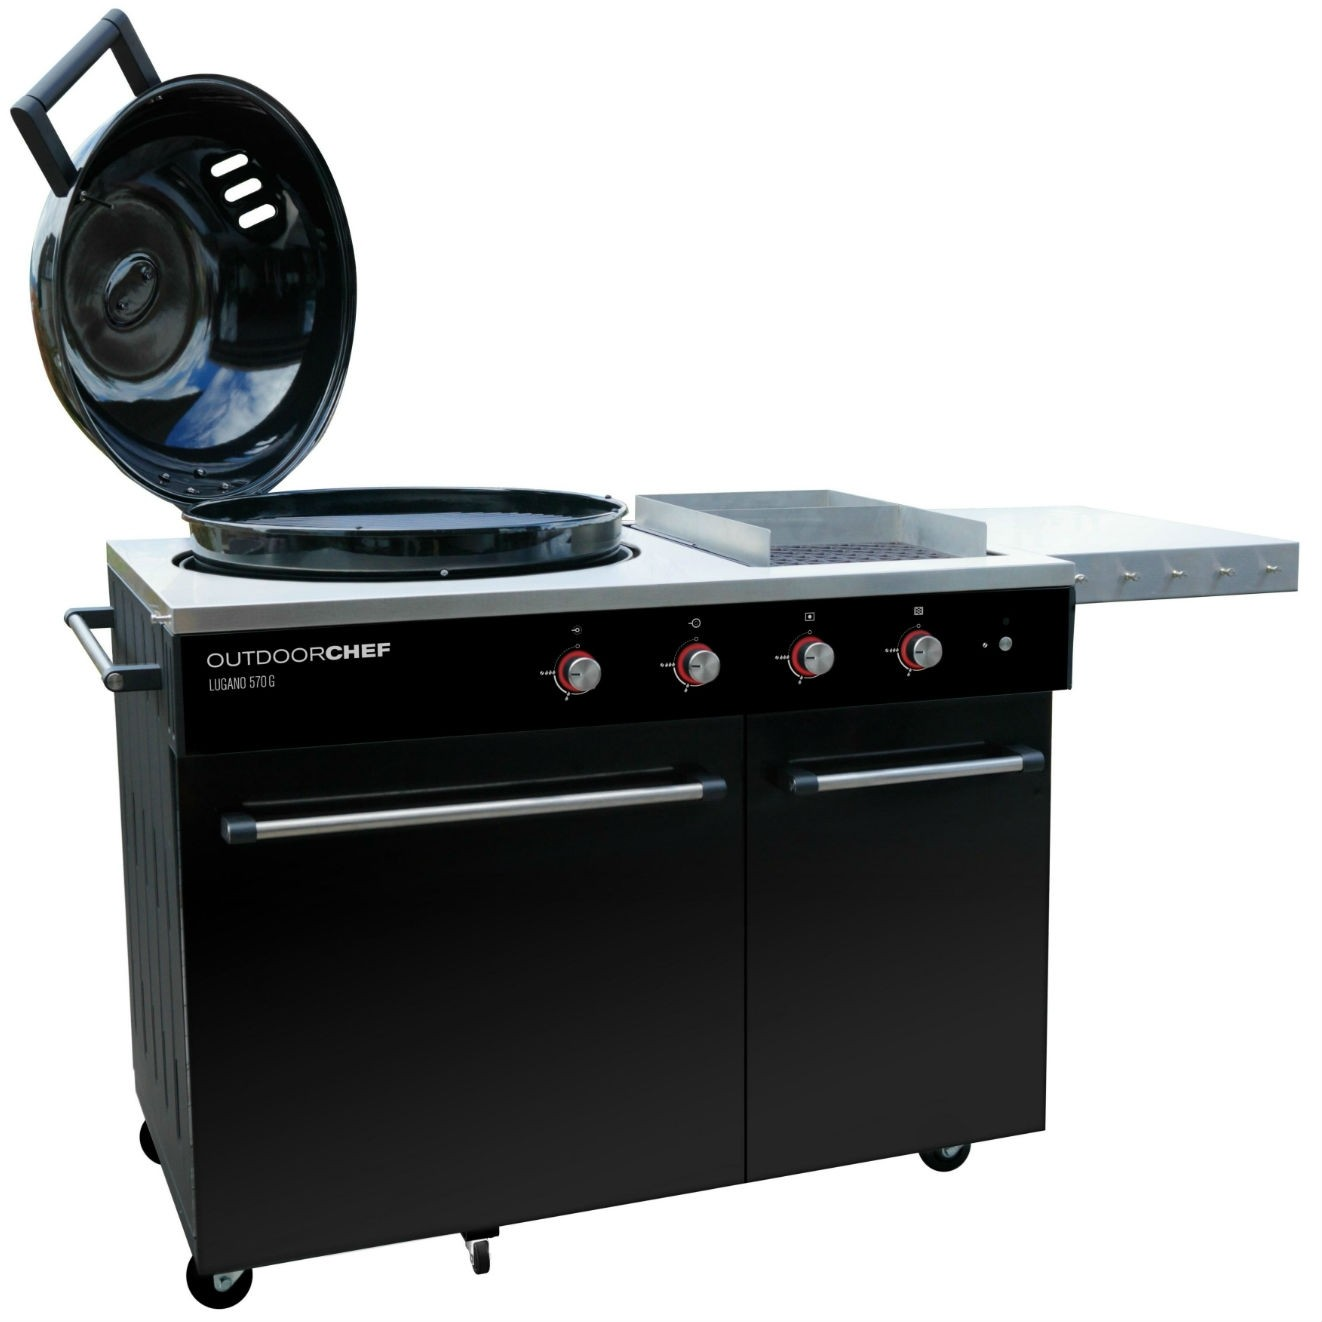 Outdoorchef 570-G Lugano Gas Barbeque